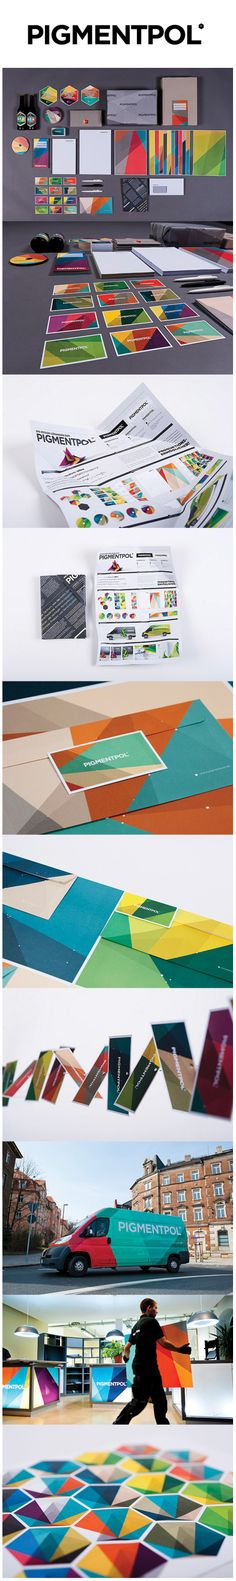 #branding Great colors!